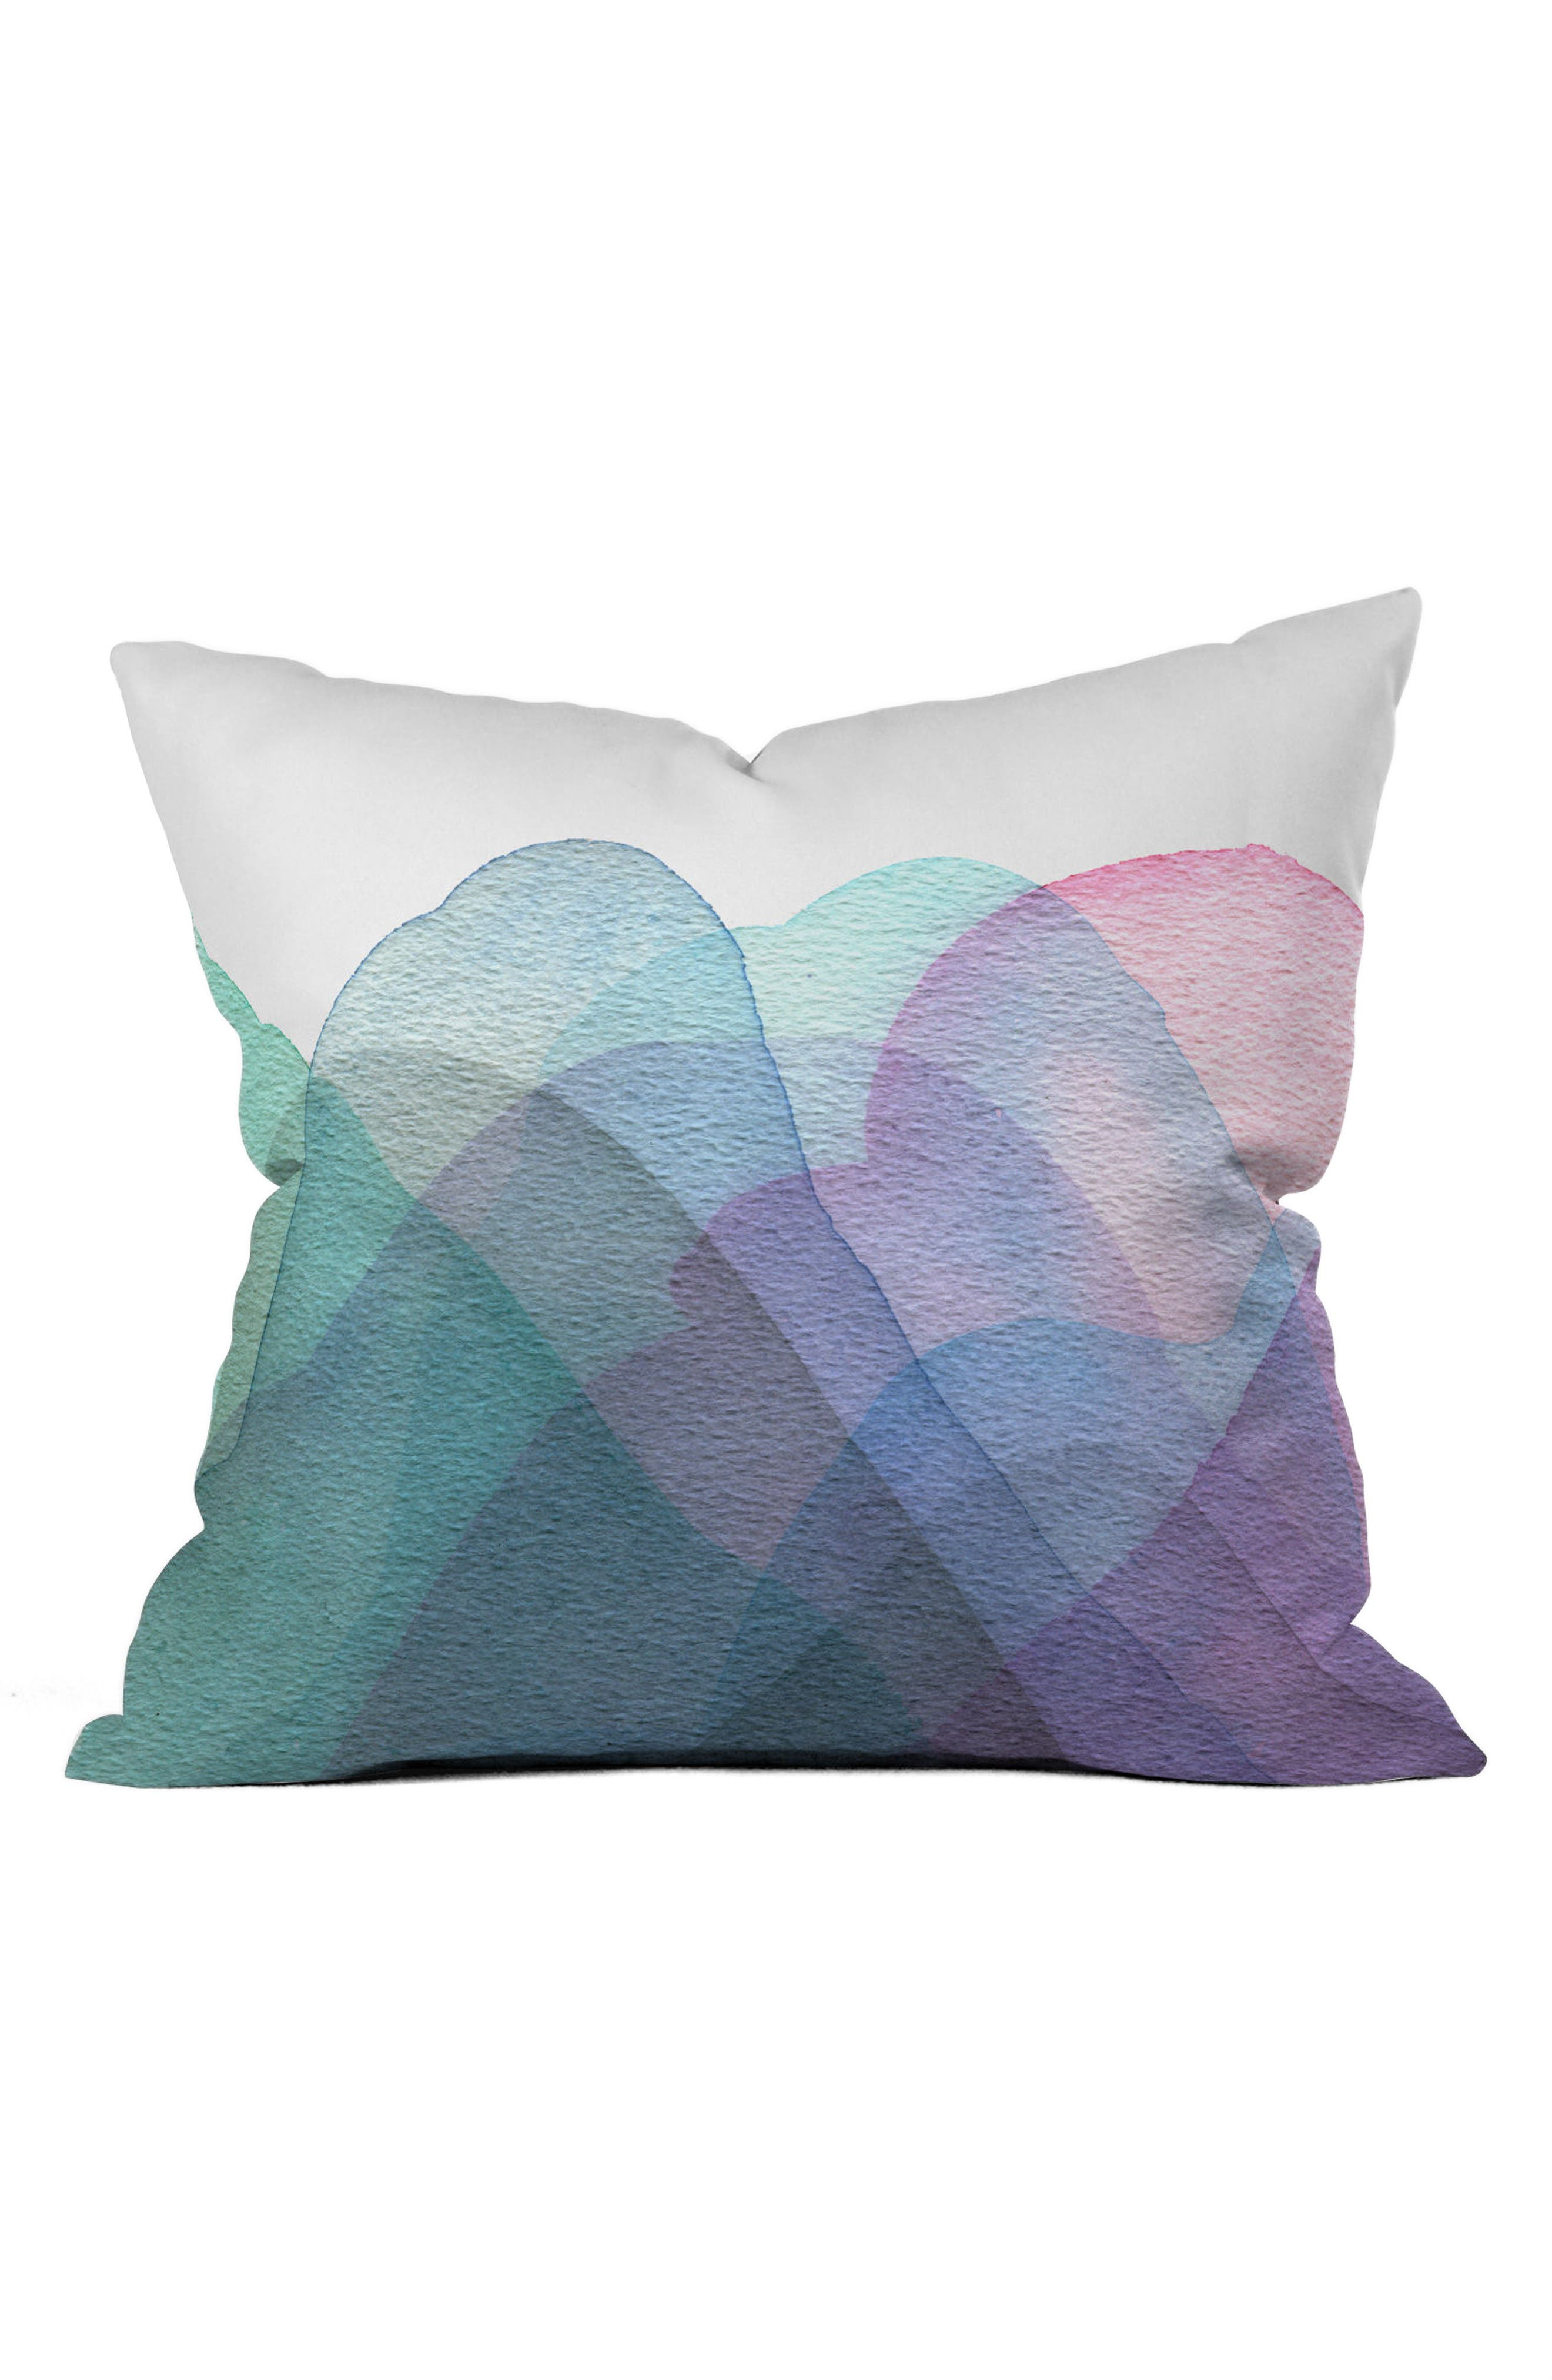 Alternate Image 1 Selected - Deny Designs Layers Pillow